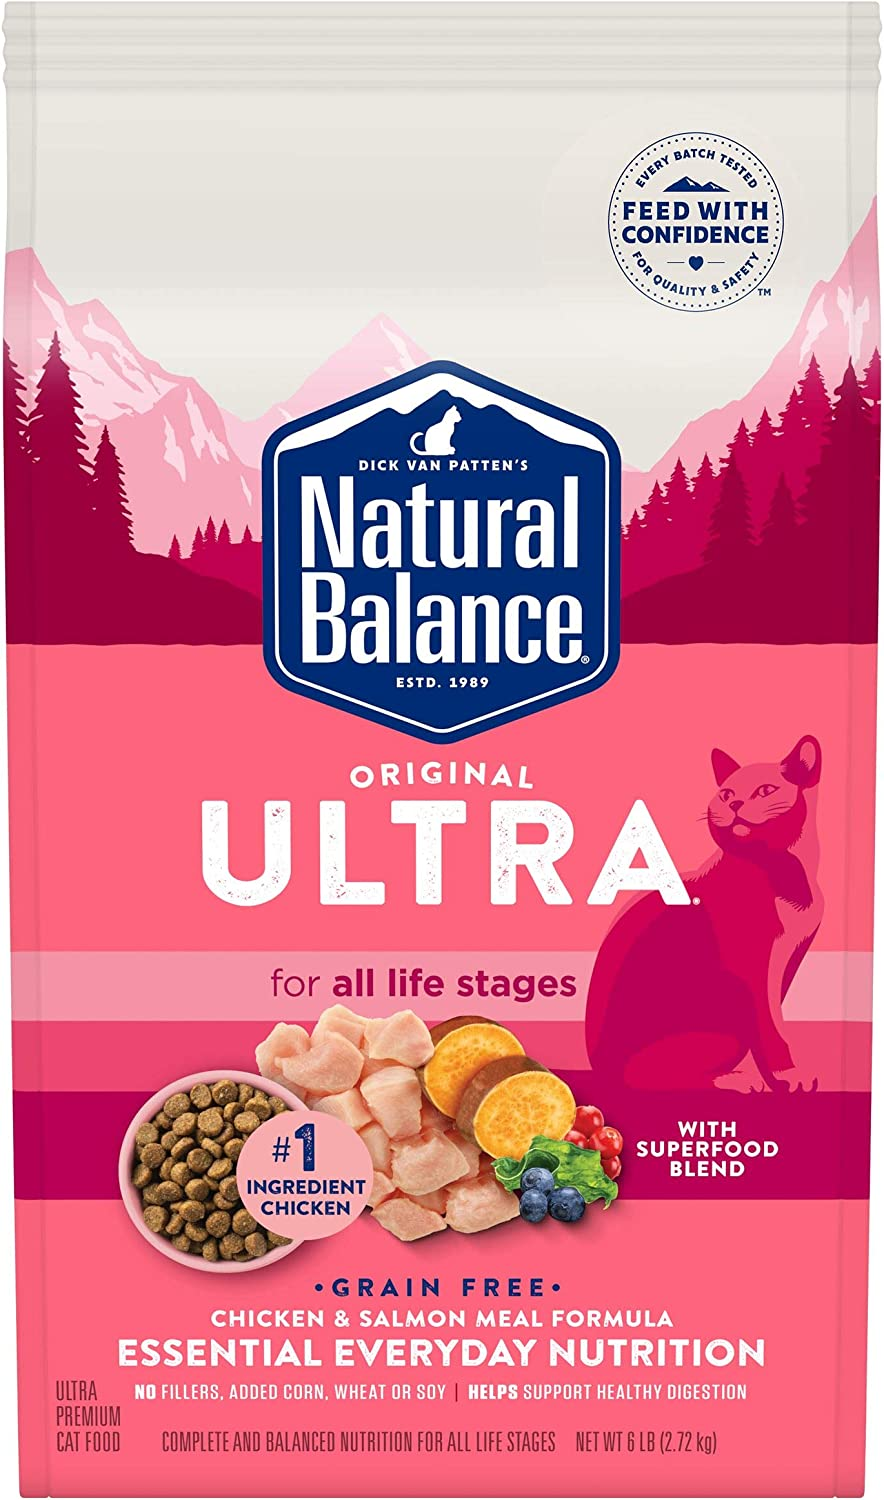 Natural Balance Original Ultra Dry Cat Food, Chicken & Salmon Meal, 6 Pounds, Grain Free, All Life Stages